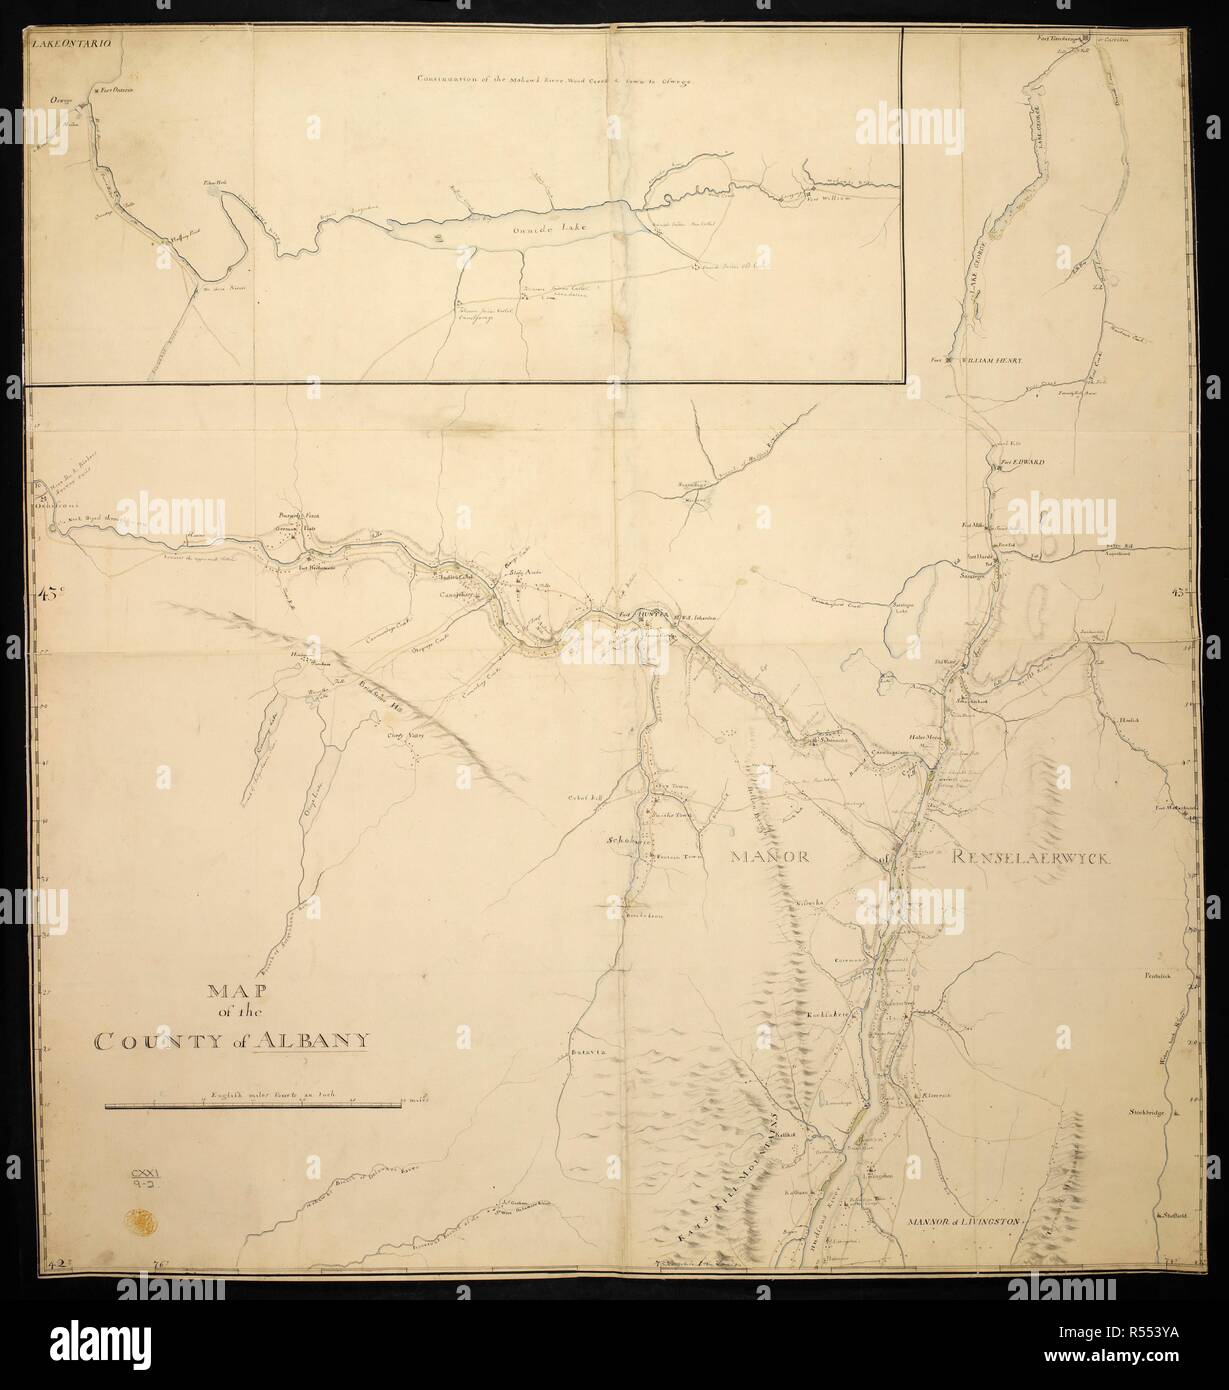 A map of the County of Albany. MAP of the COUNTY of ALBANY ... Map Of Albany on map of crabtree, map of foxborough, map of hubbard, map of marylhurst university, map of south west western australia, map of glen echo, map of oregon, map of crandall, map of girard, map of spencerport, map of browns island, map of buffalo, map of brookings, map of new york state, map of crane, map of otto, map of dormansville, map of woodbourne, map of new york city, map of georgia,